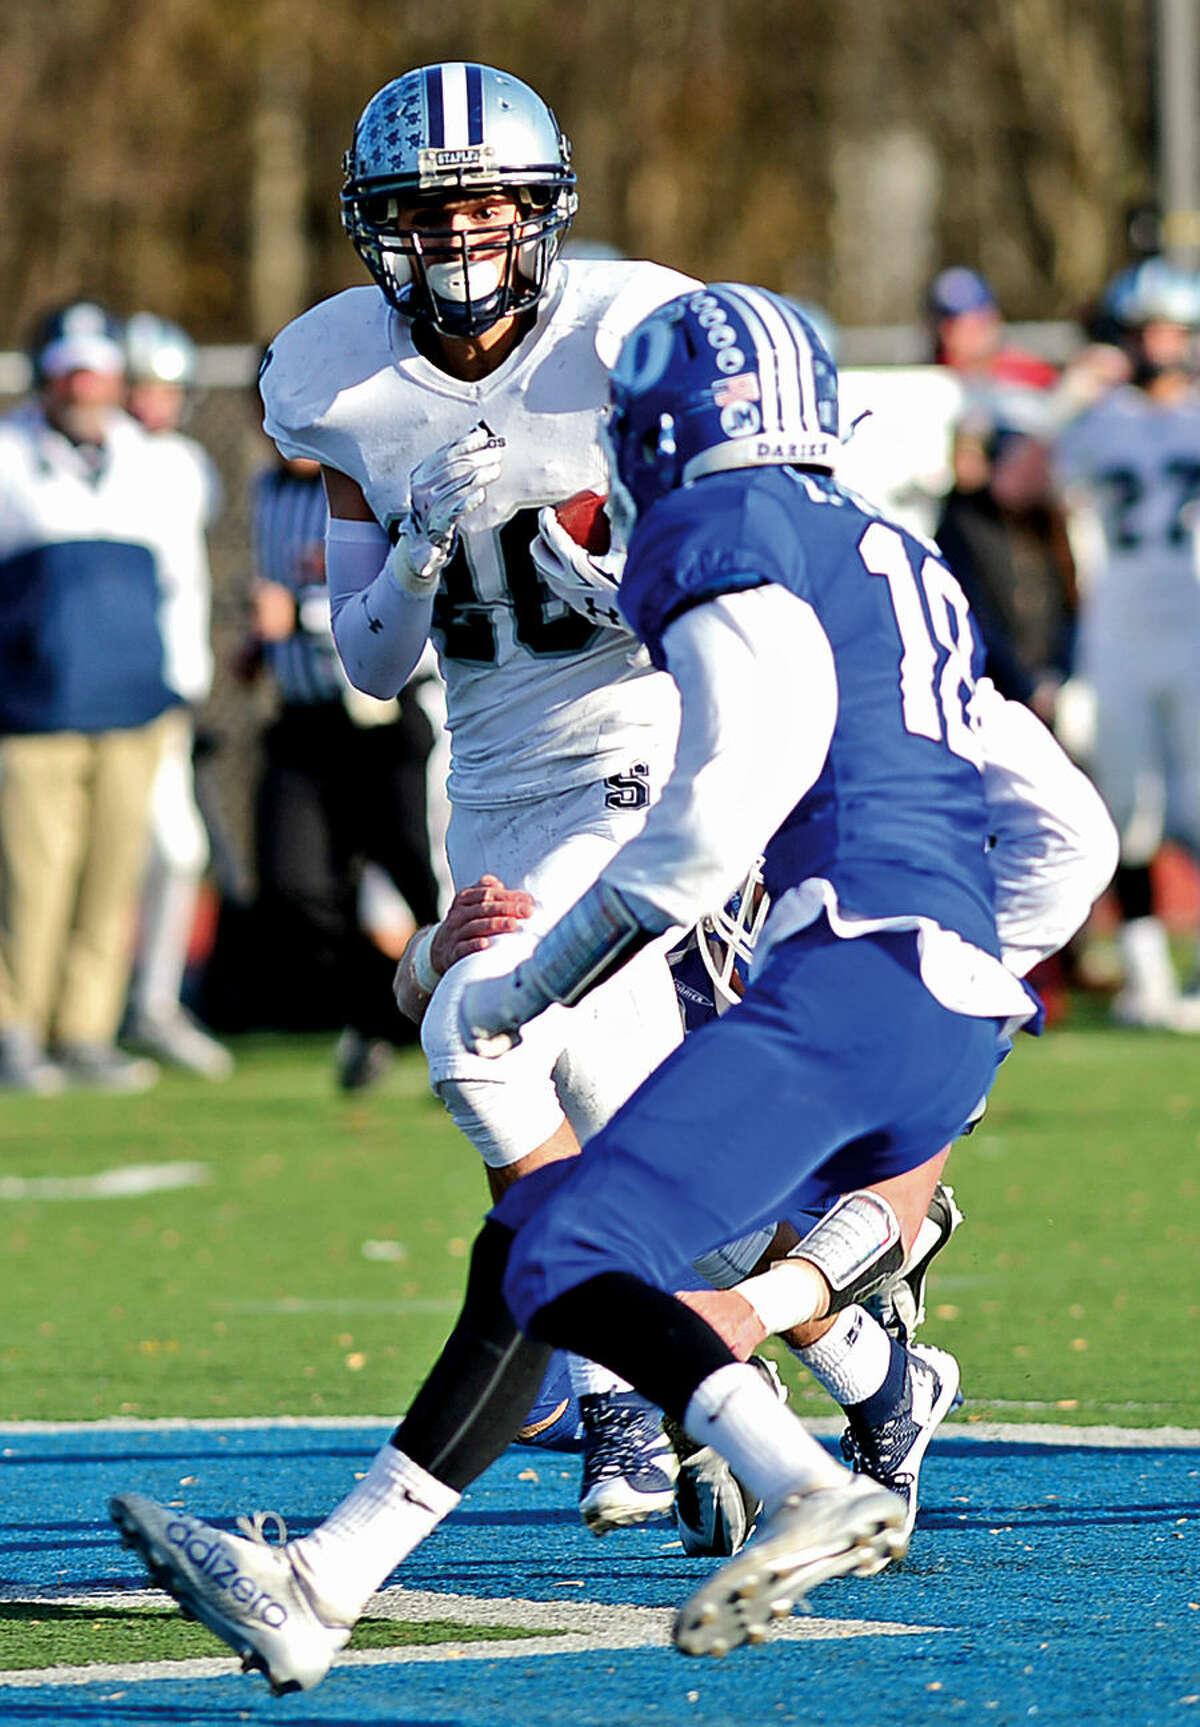 Hour photo / Erik Trautmann Elliot Pouilley of Staples tries to move the ball up field after a reception during a devastating defeat by Darien High School Saturday in Darien.